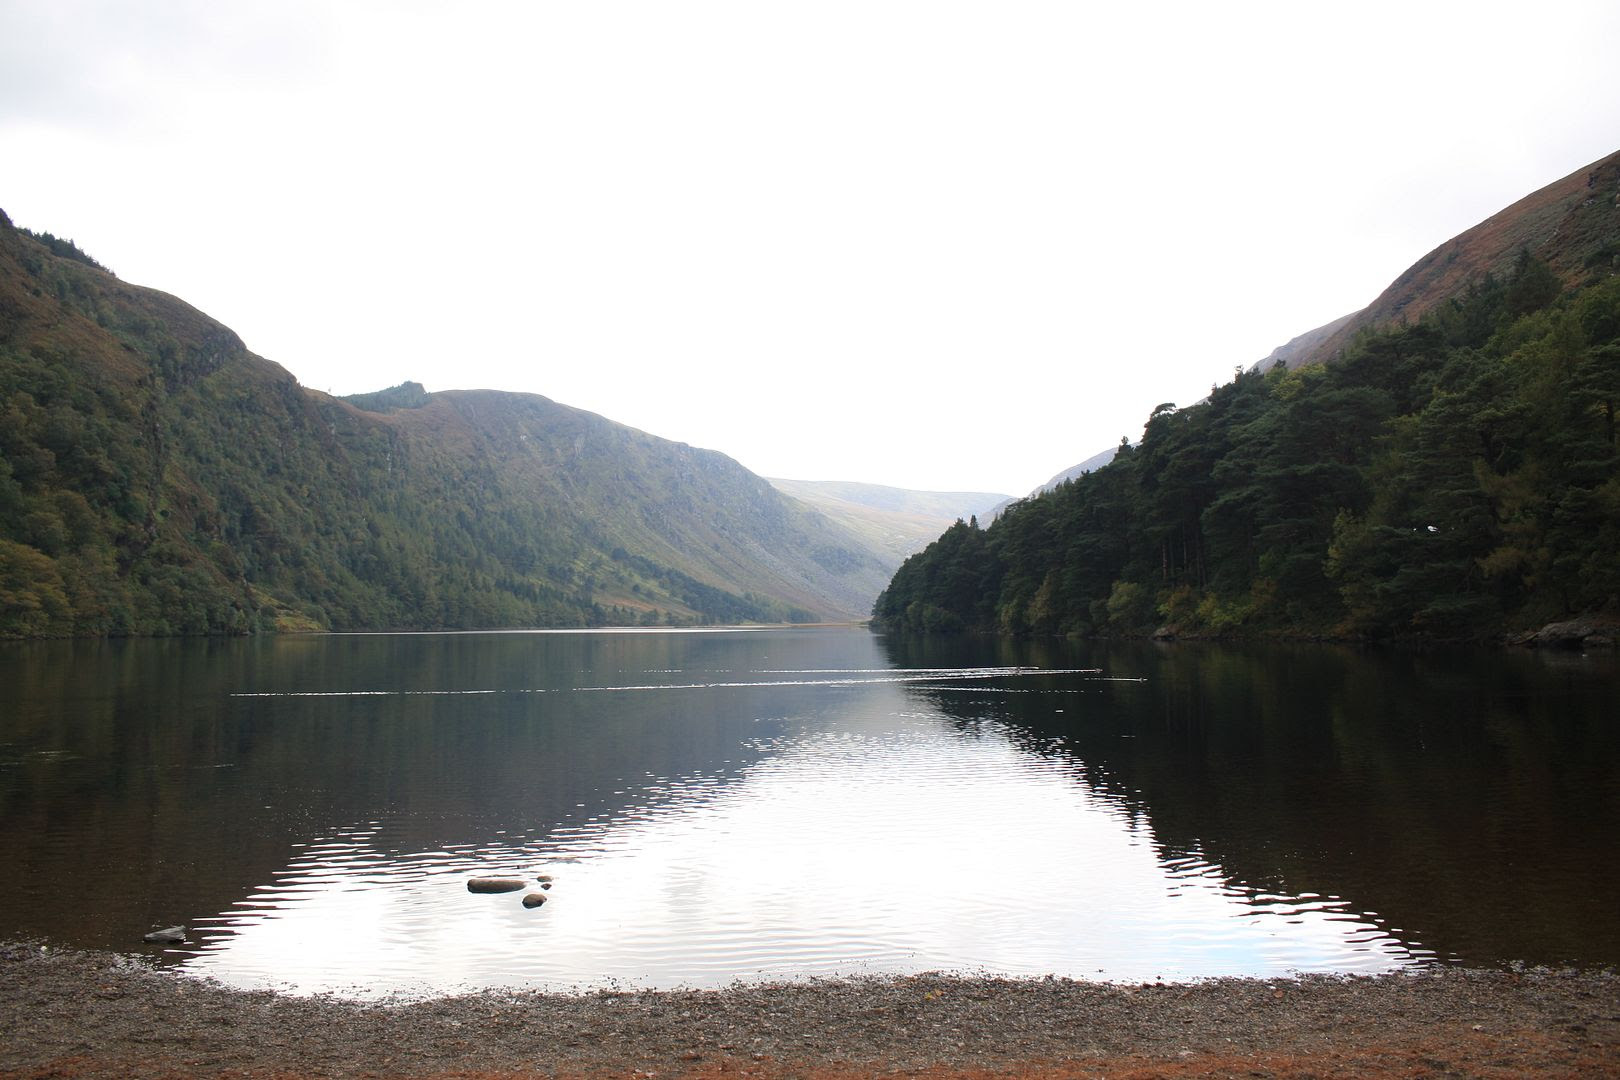 Glendalough, Ireland photo IMG_4012_zpsx9e83fqa.jpg